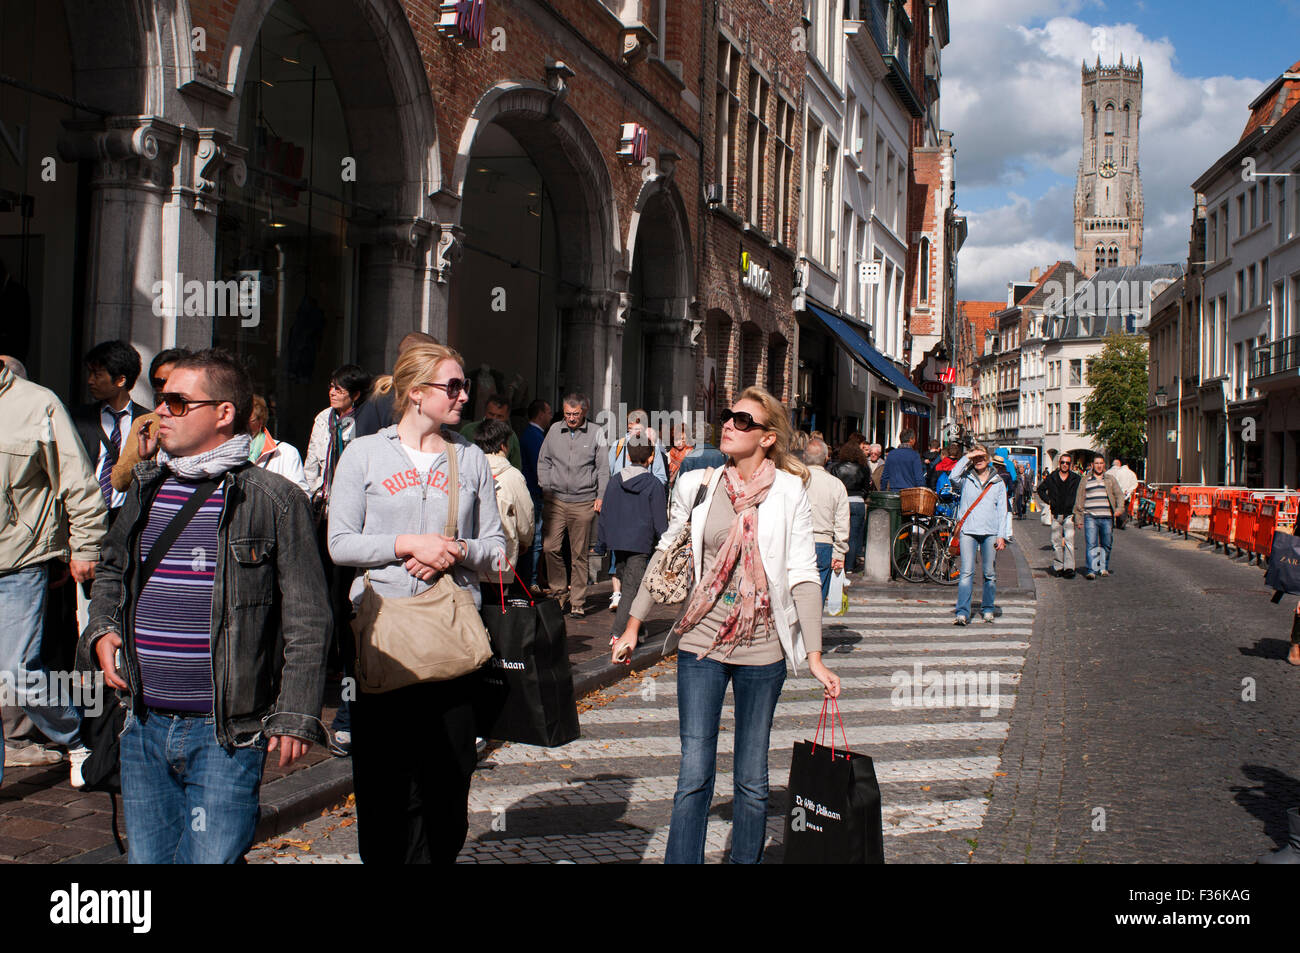 Shopping in Bruges. Bruges' main shopping areas are situated between 't Zand and Markt Square - opening - Stock Image